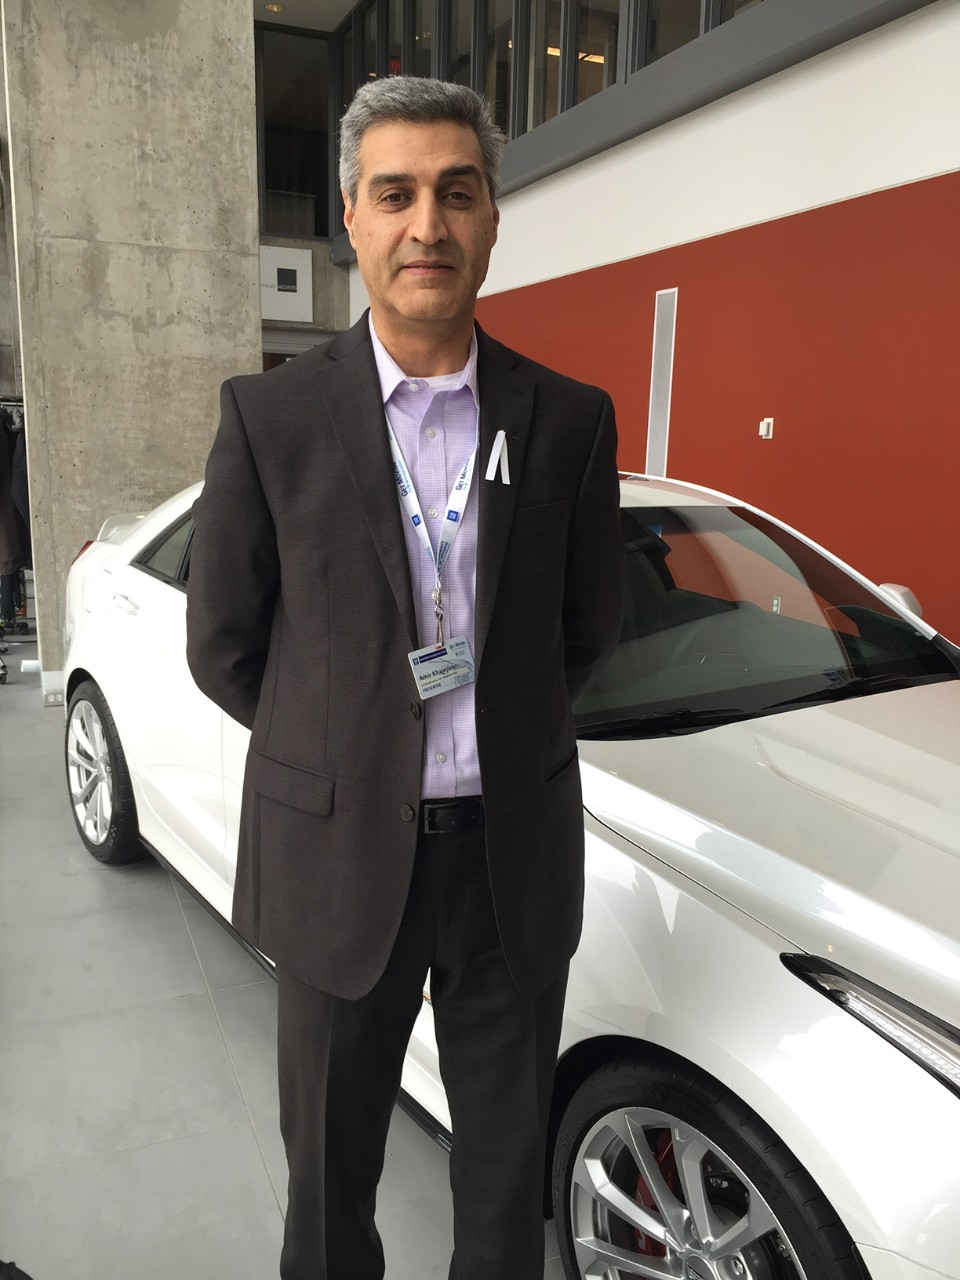 Amir Khajepour standing in front of a new white car. He is wearing a black blazer with a violet dress shirt.